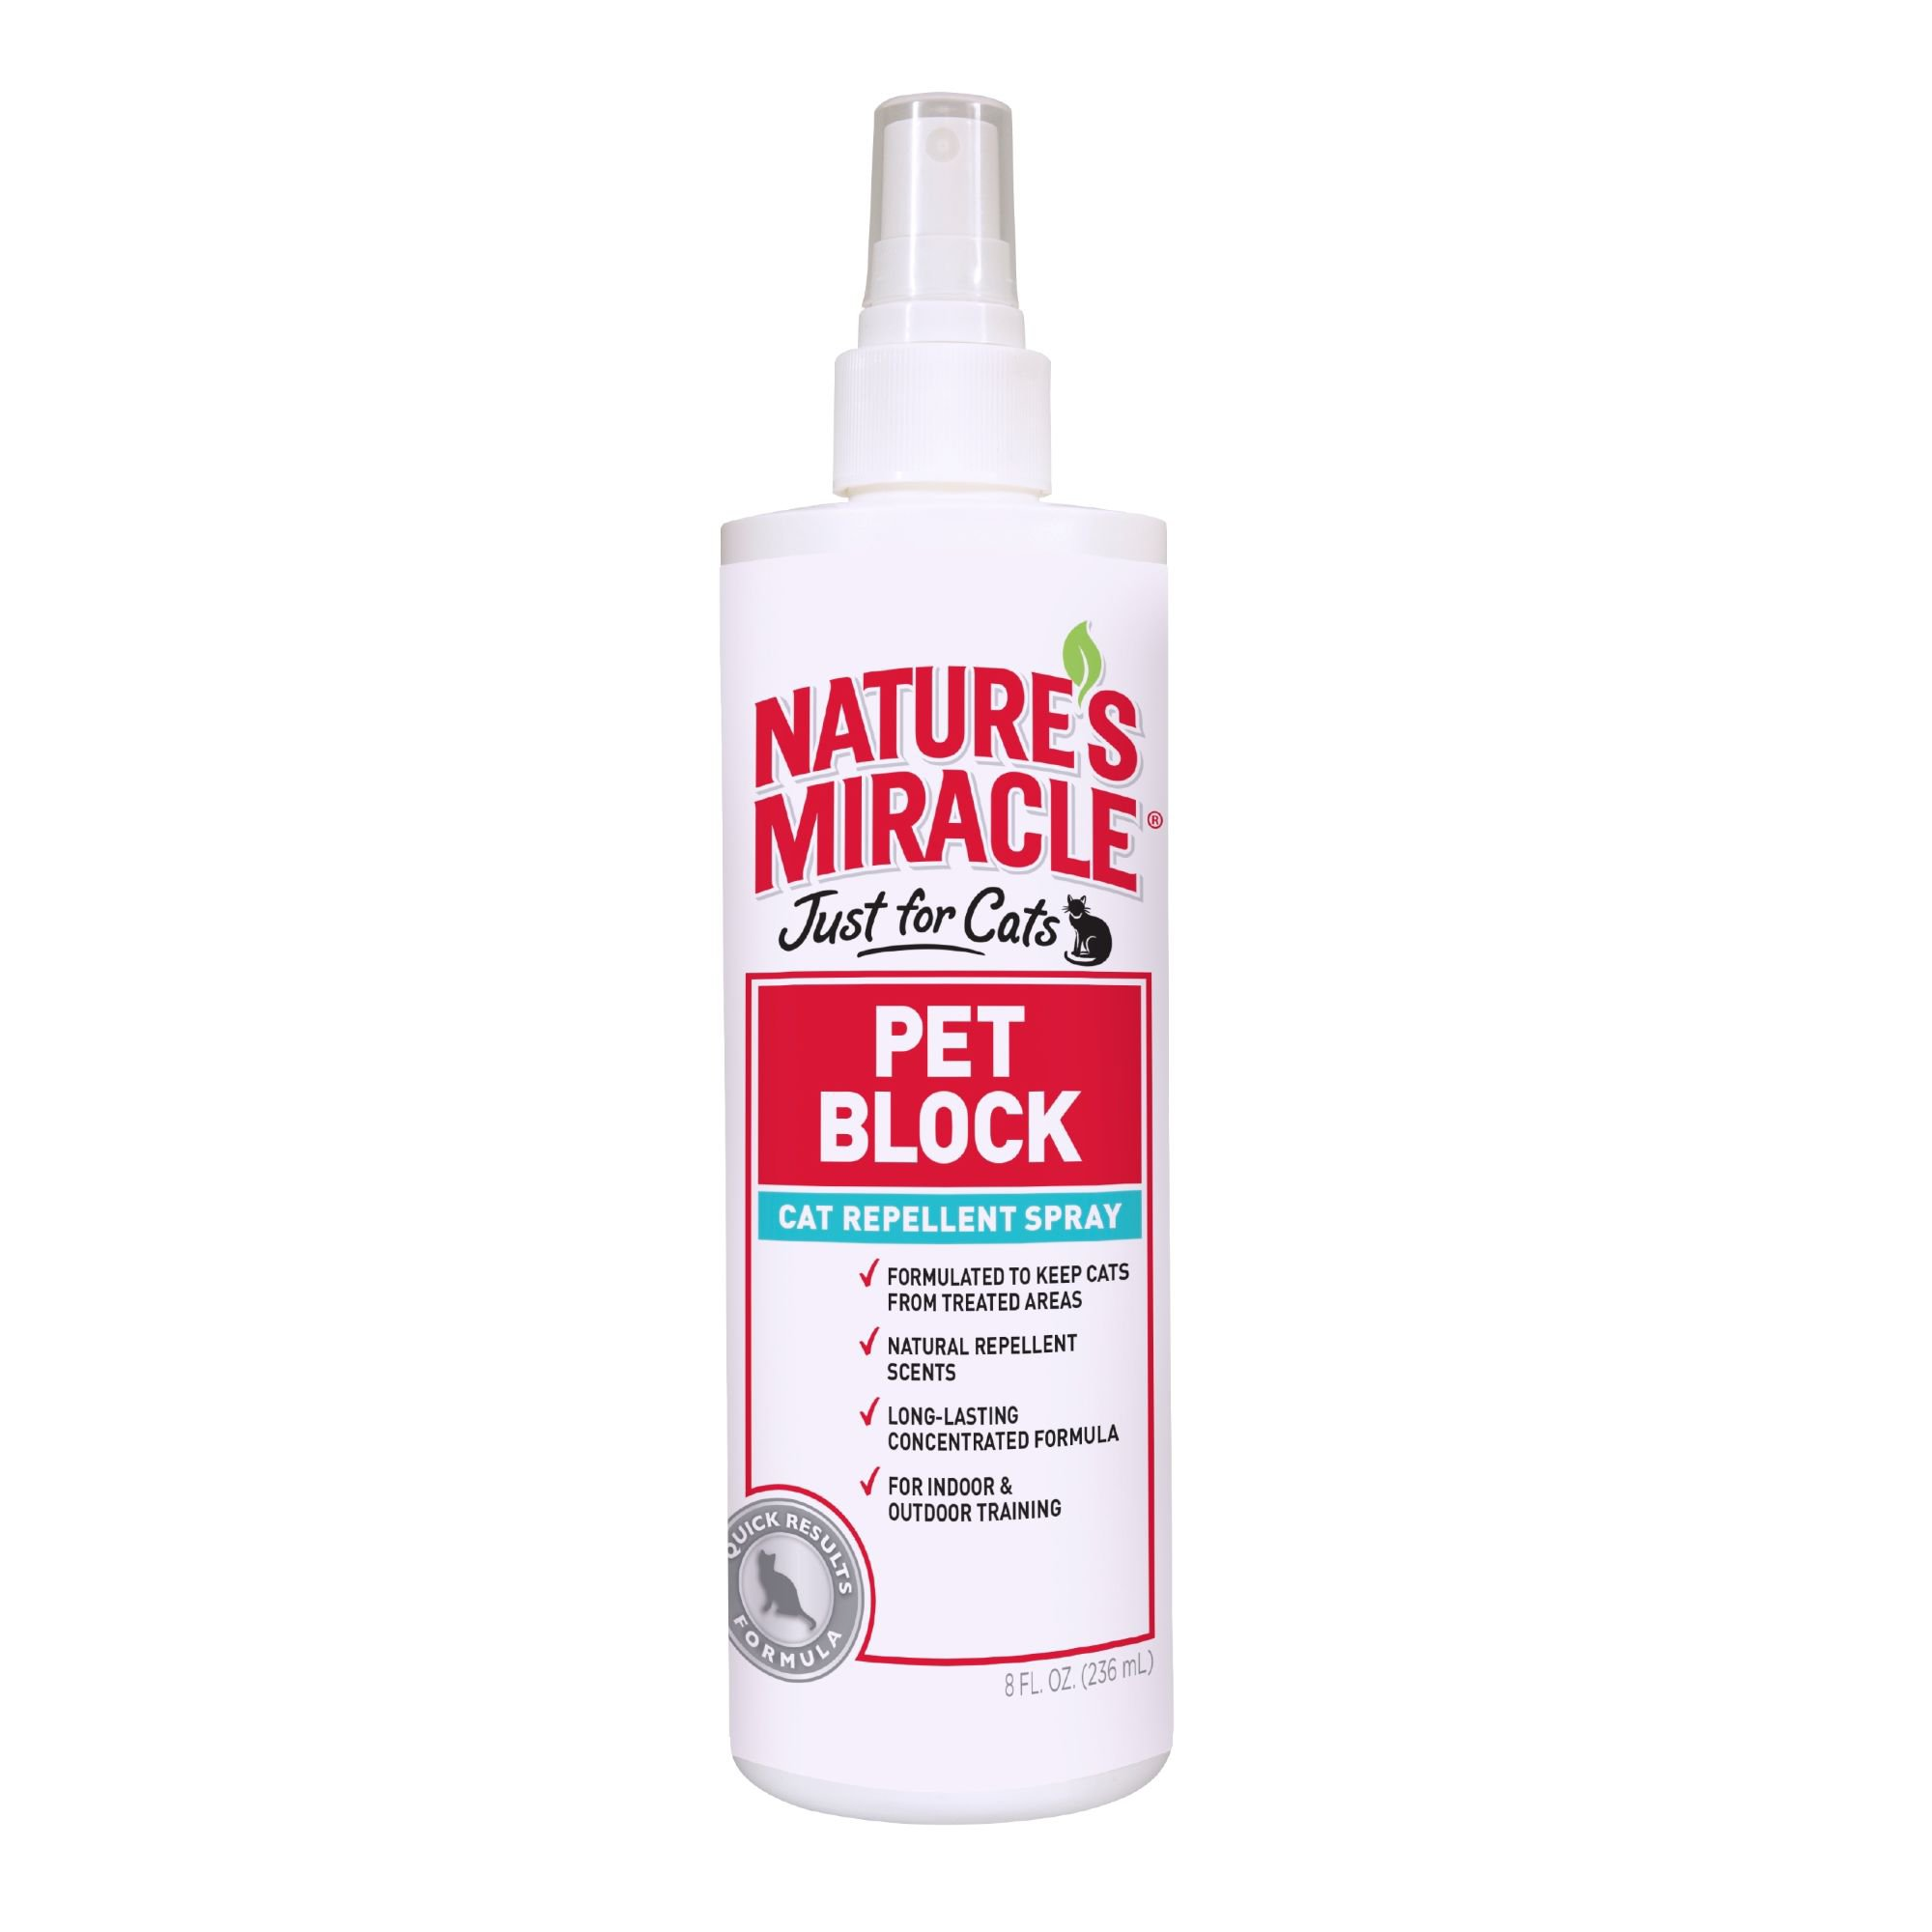 Nature's Miracle Pet Block Cat Repellent